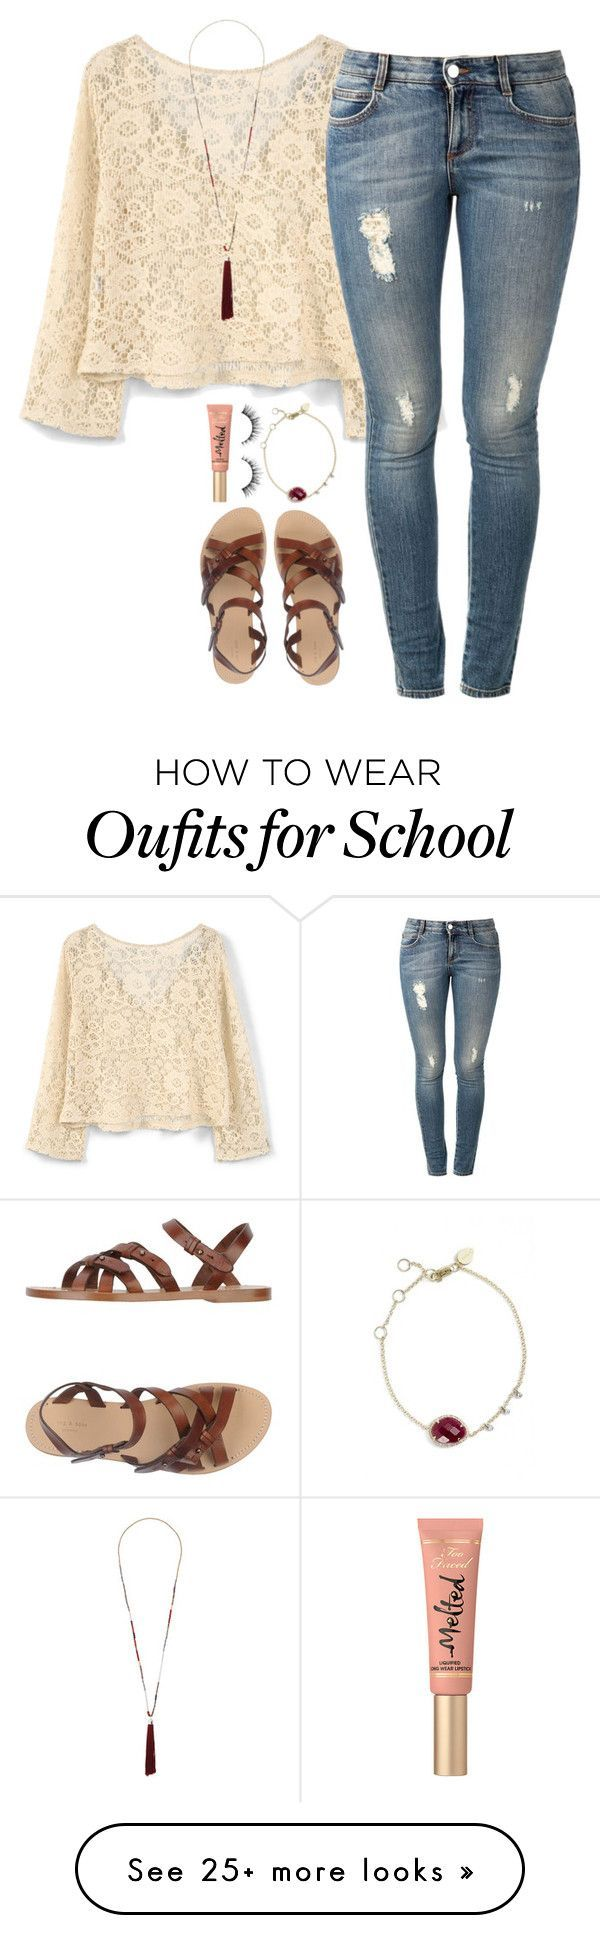 """School outfit tomorrow :))"" by lilypackard on Polyvore featuring MANGO, STELLA McCARTNEY, rag & bone, Topshop, Meira T and Too Faced Cosmetics"